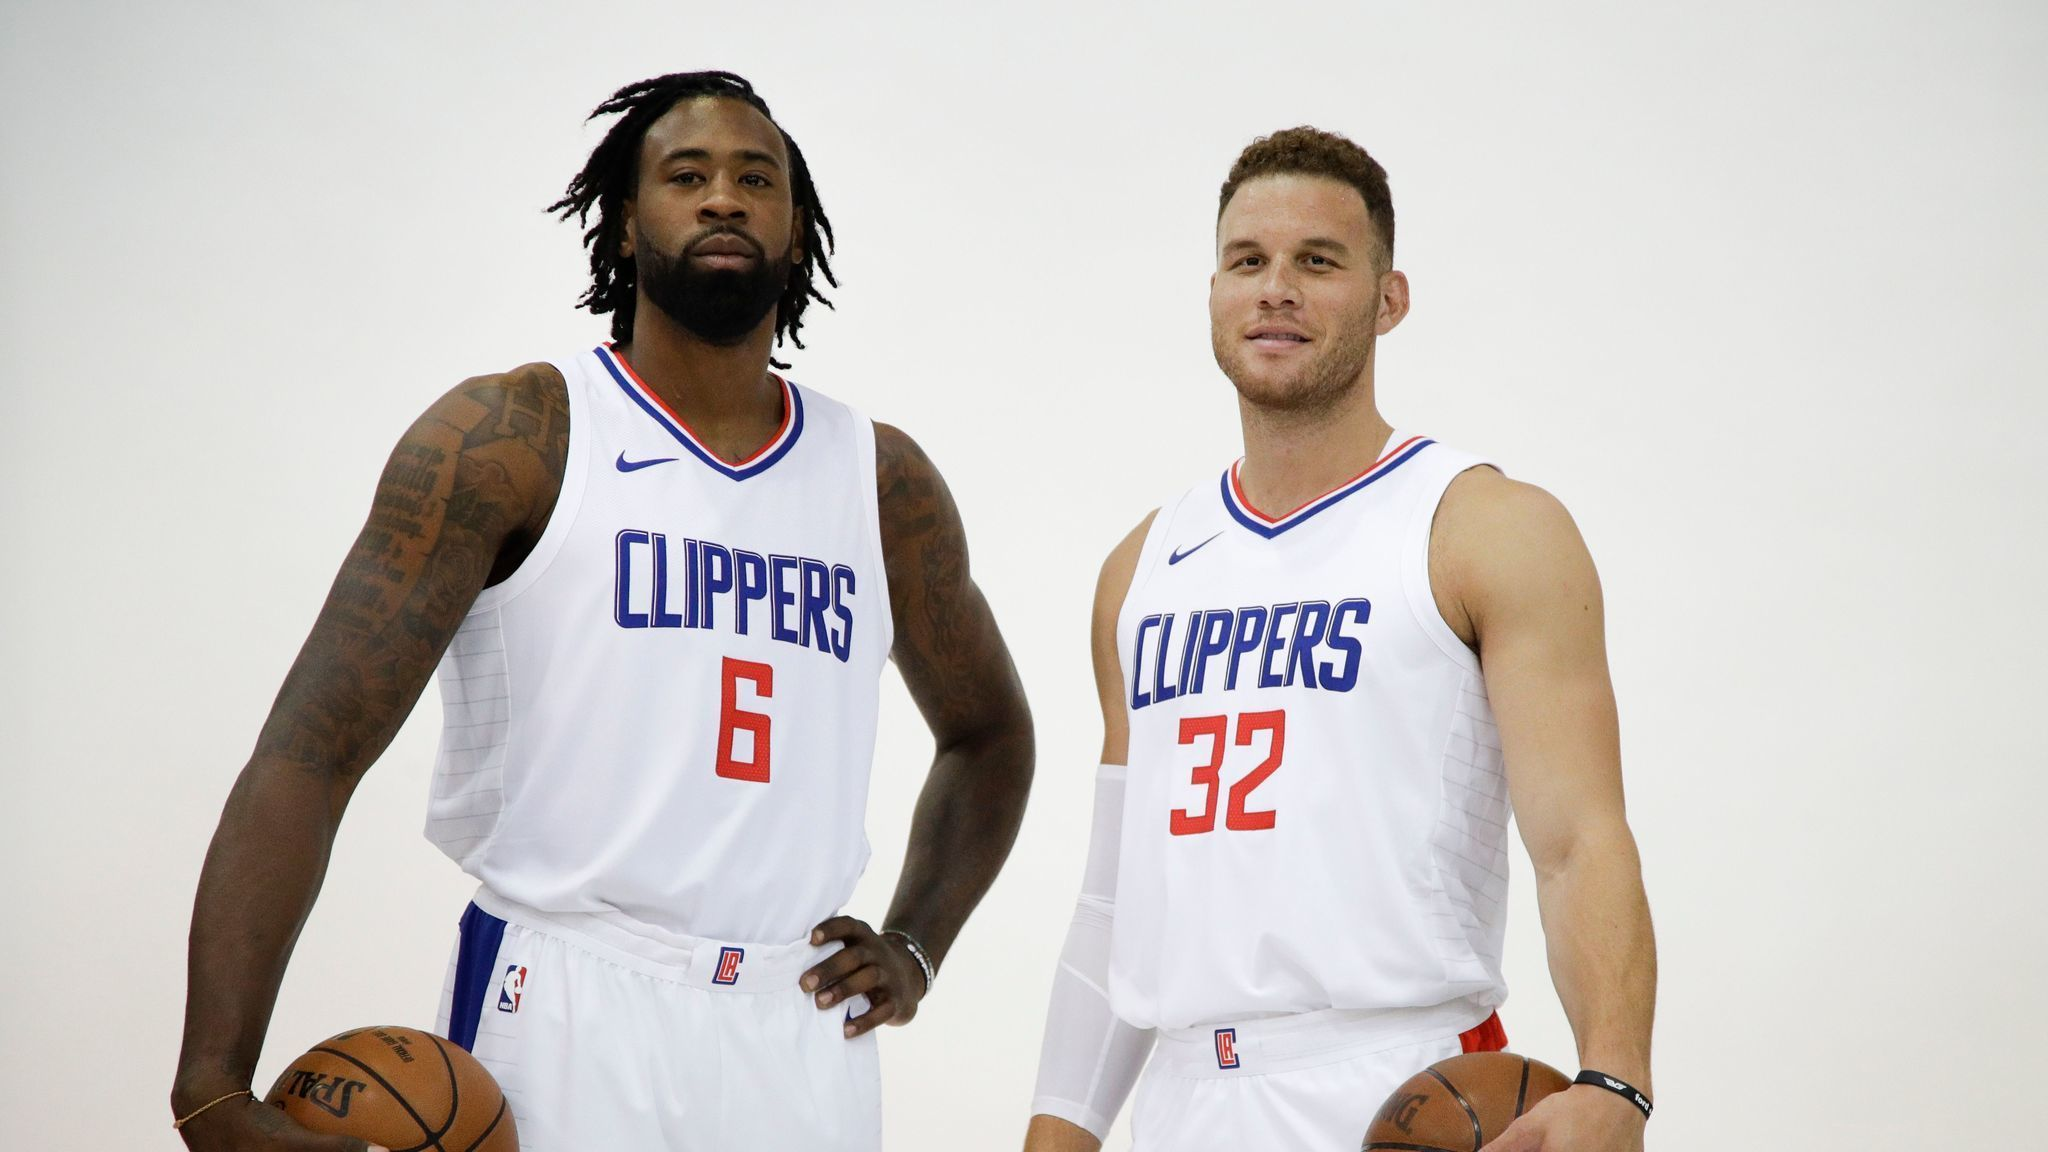 La-sp-clippers-newsletter-20171012